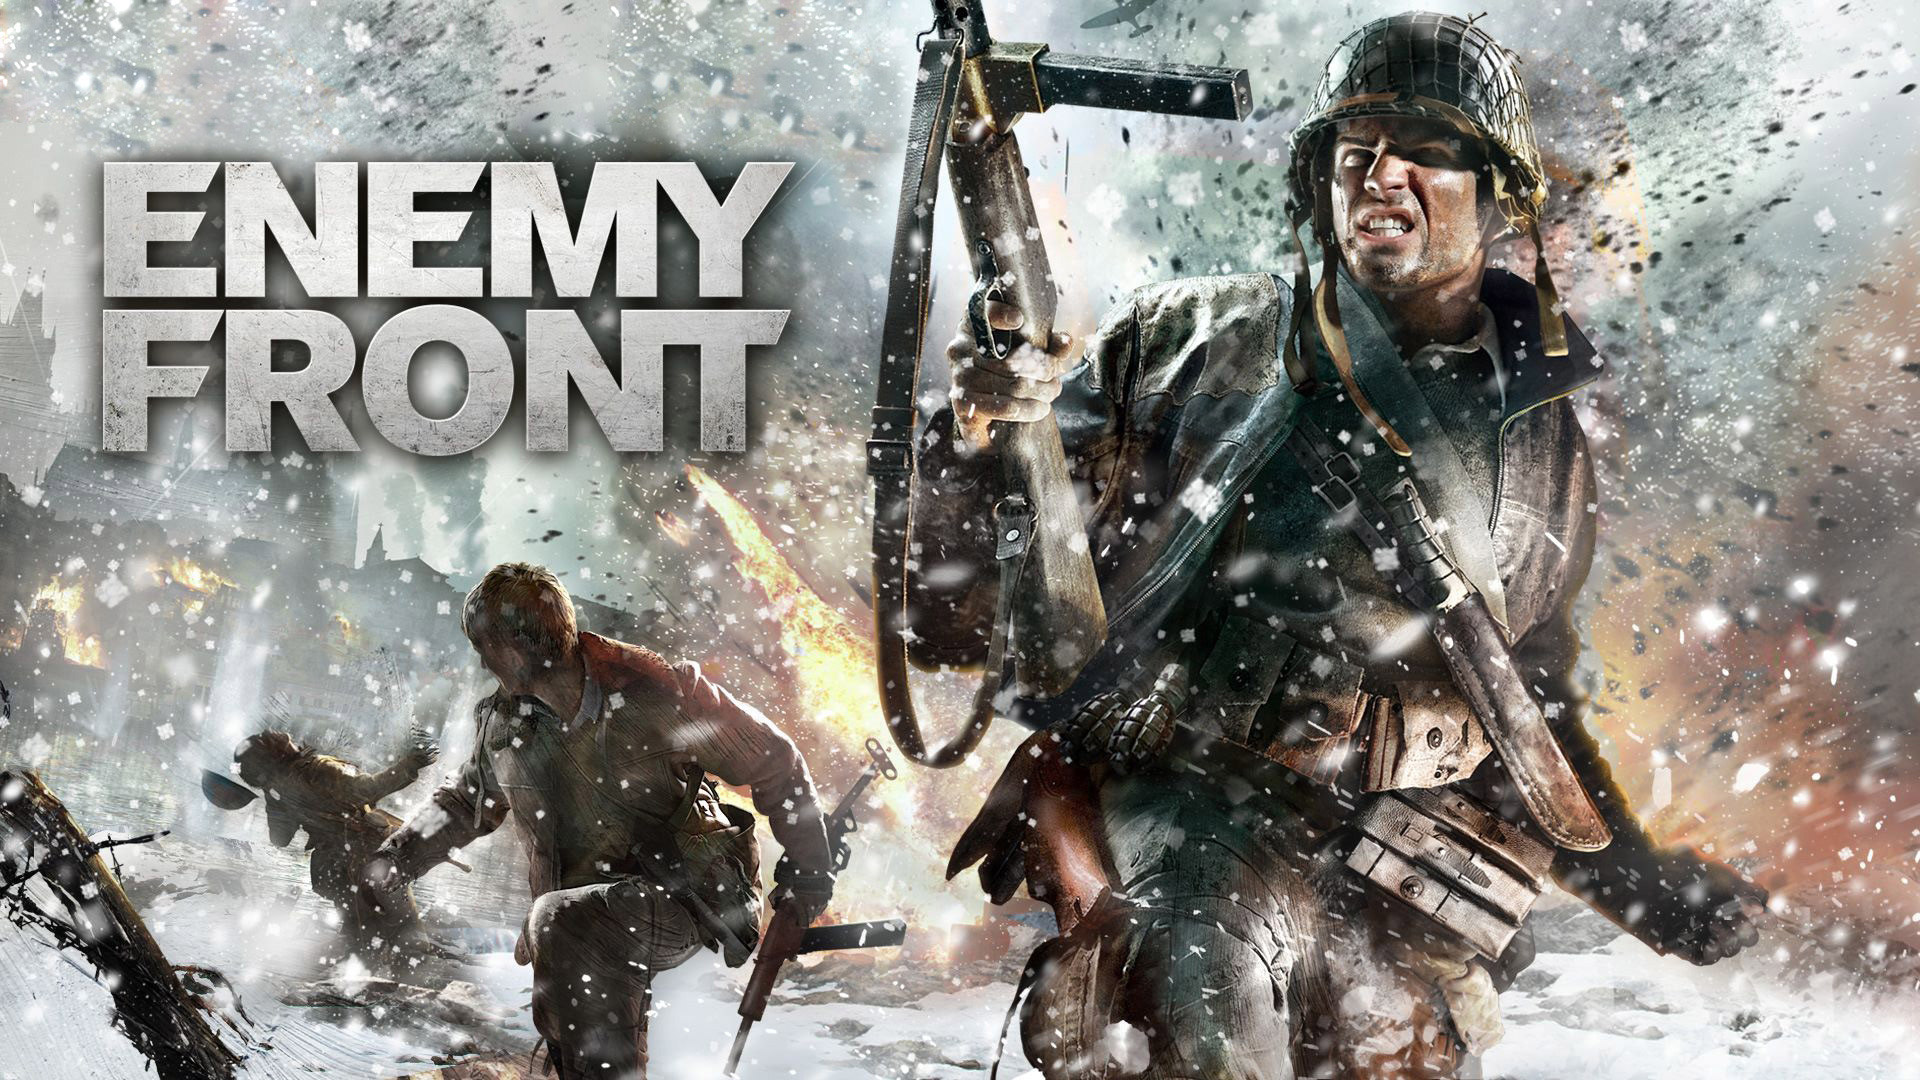 Enemy Front wallpaper 1